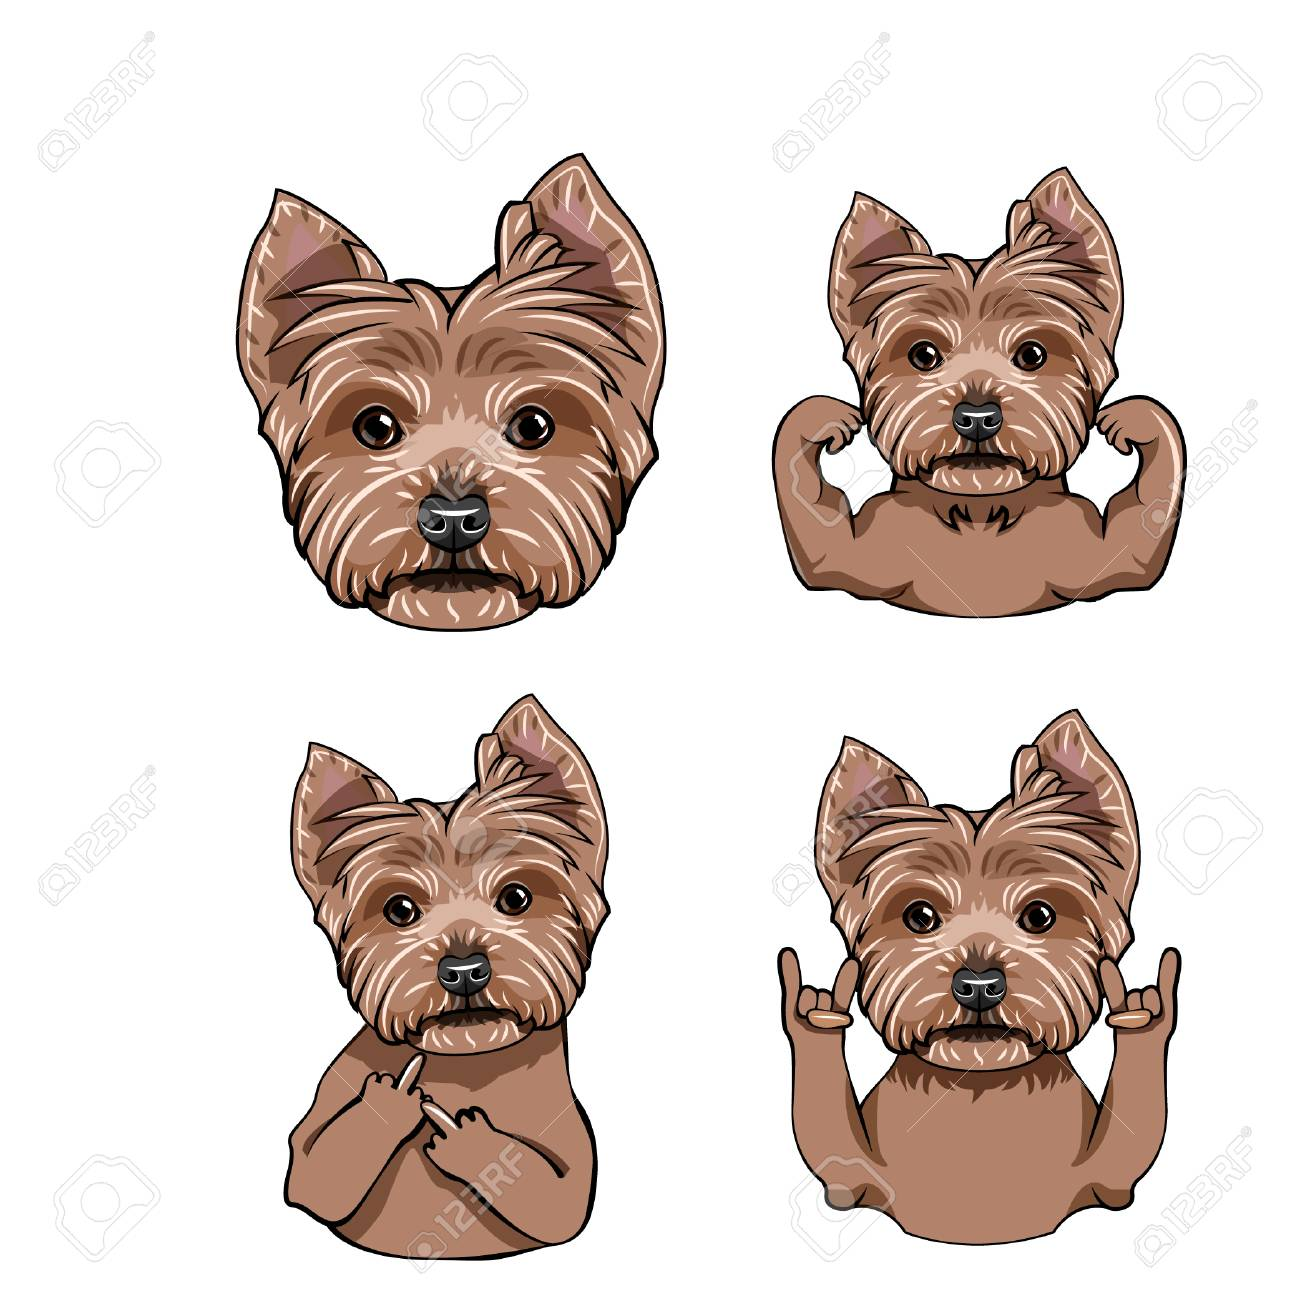 Yorkshire Terrier Dog Collection Vector Illustration Royalty Free